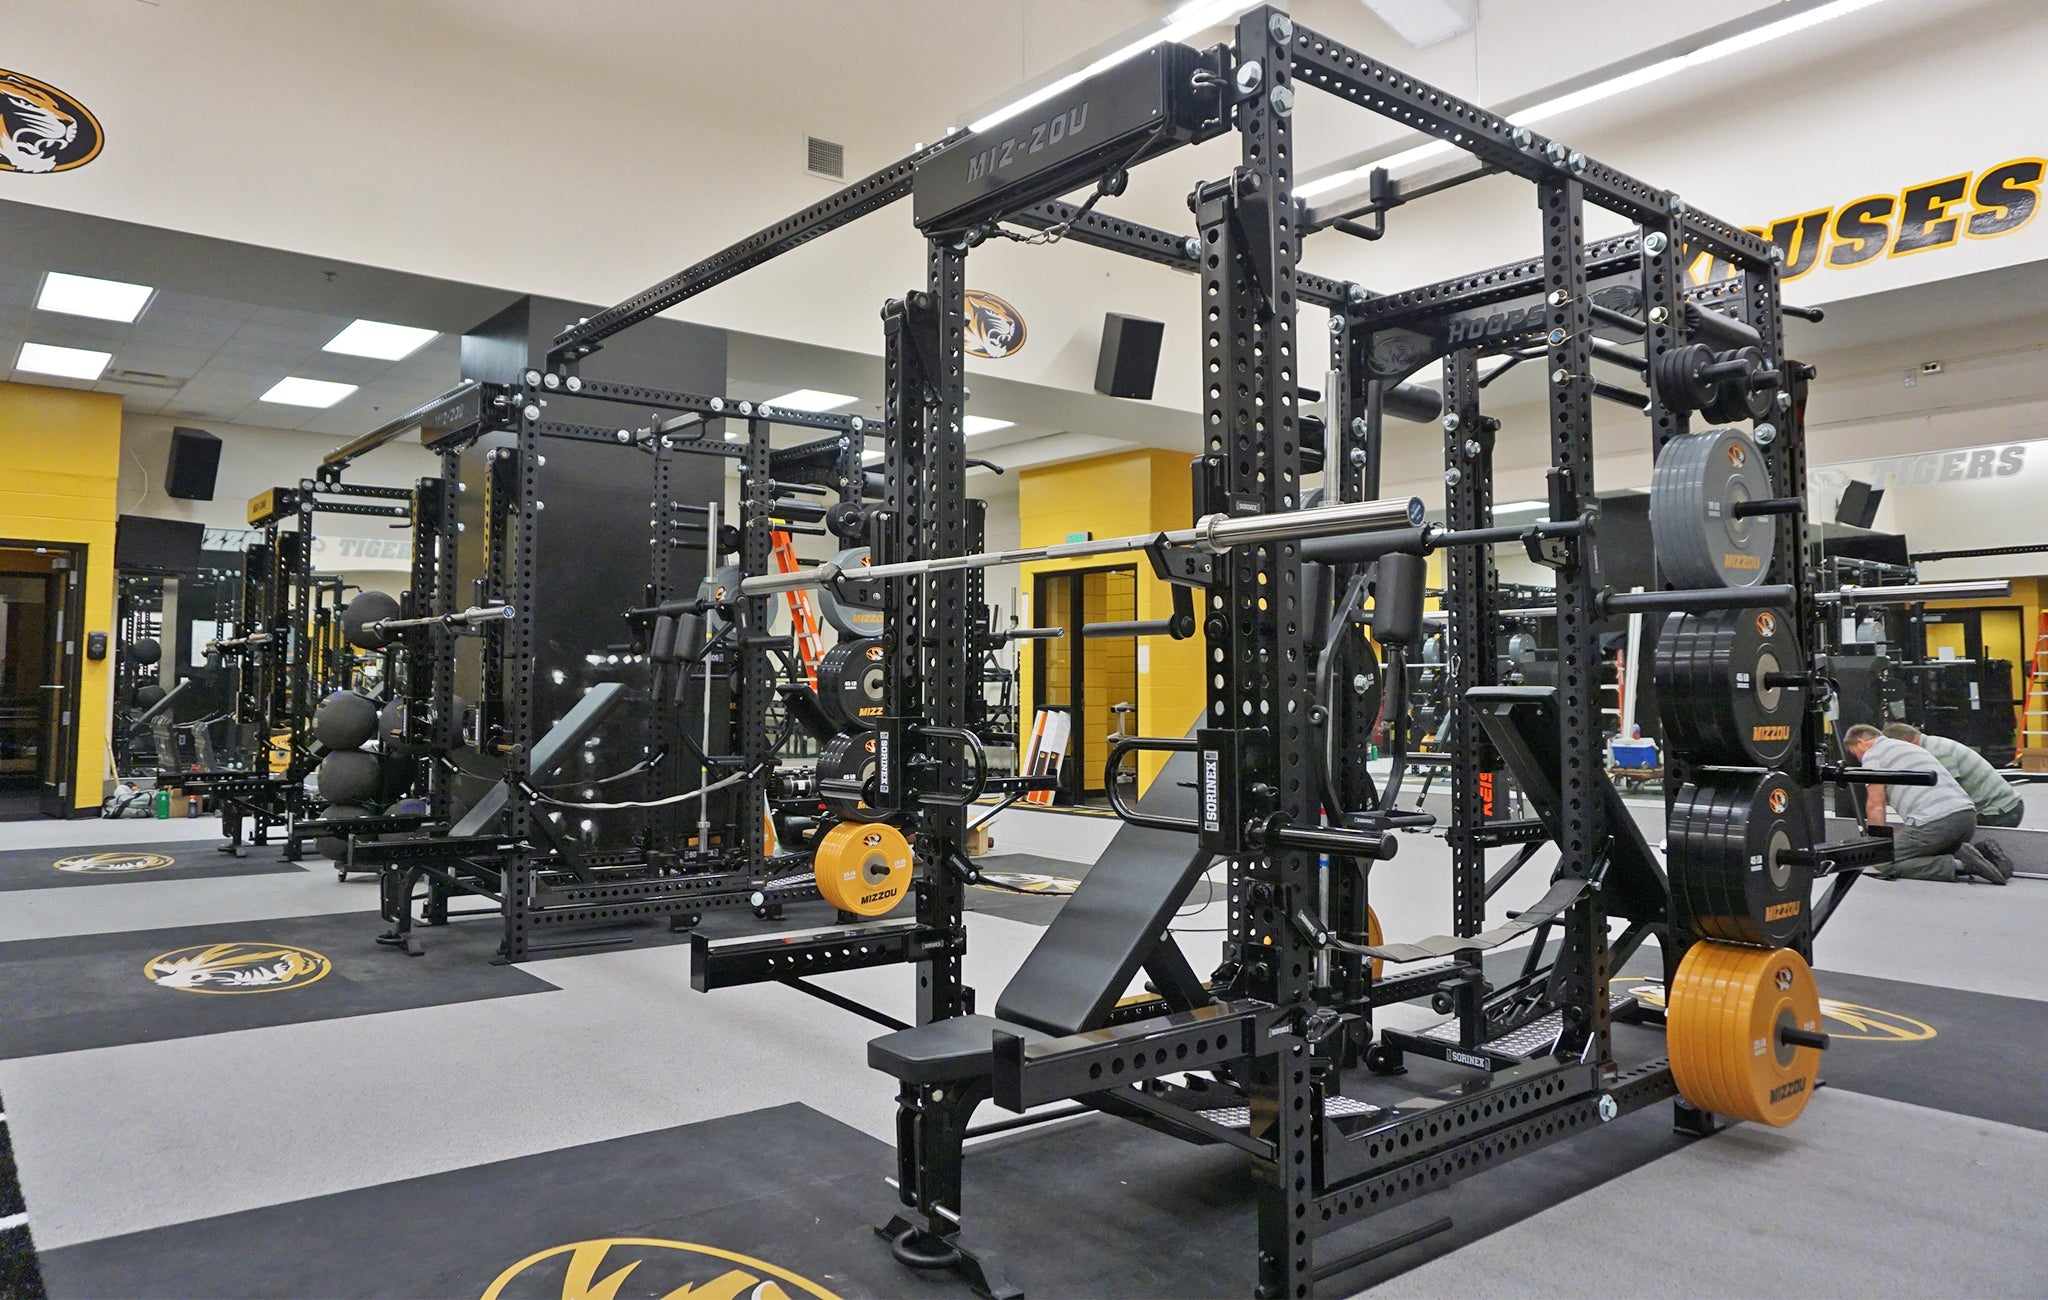 Mizzou Weight Room